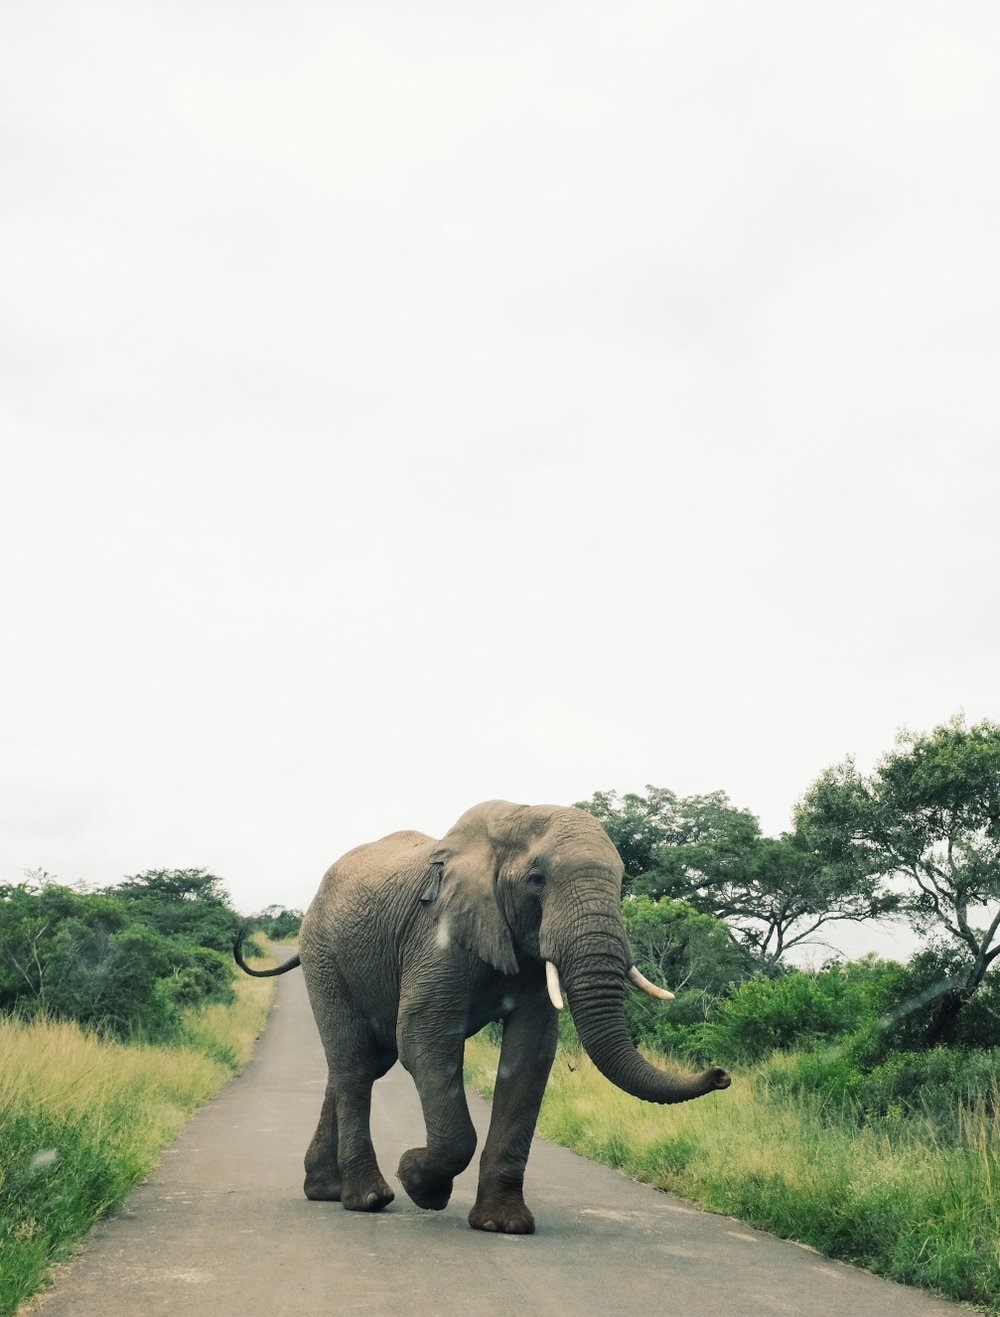 We were so fortunate to be surrounded by elephants on our game drive through  Hluhluwe game reserve .